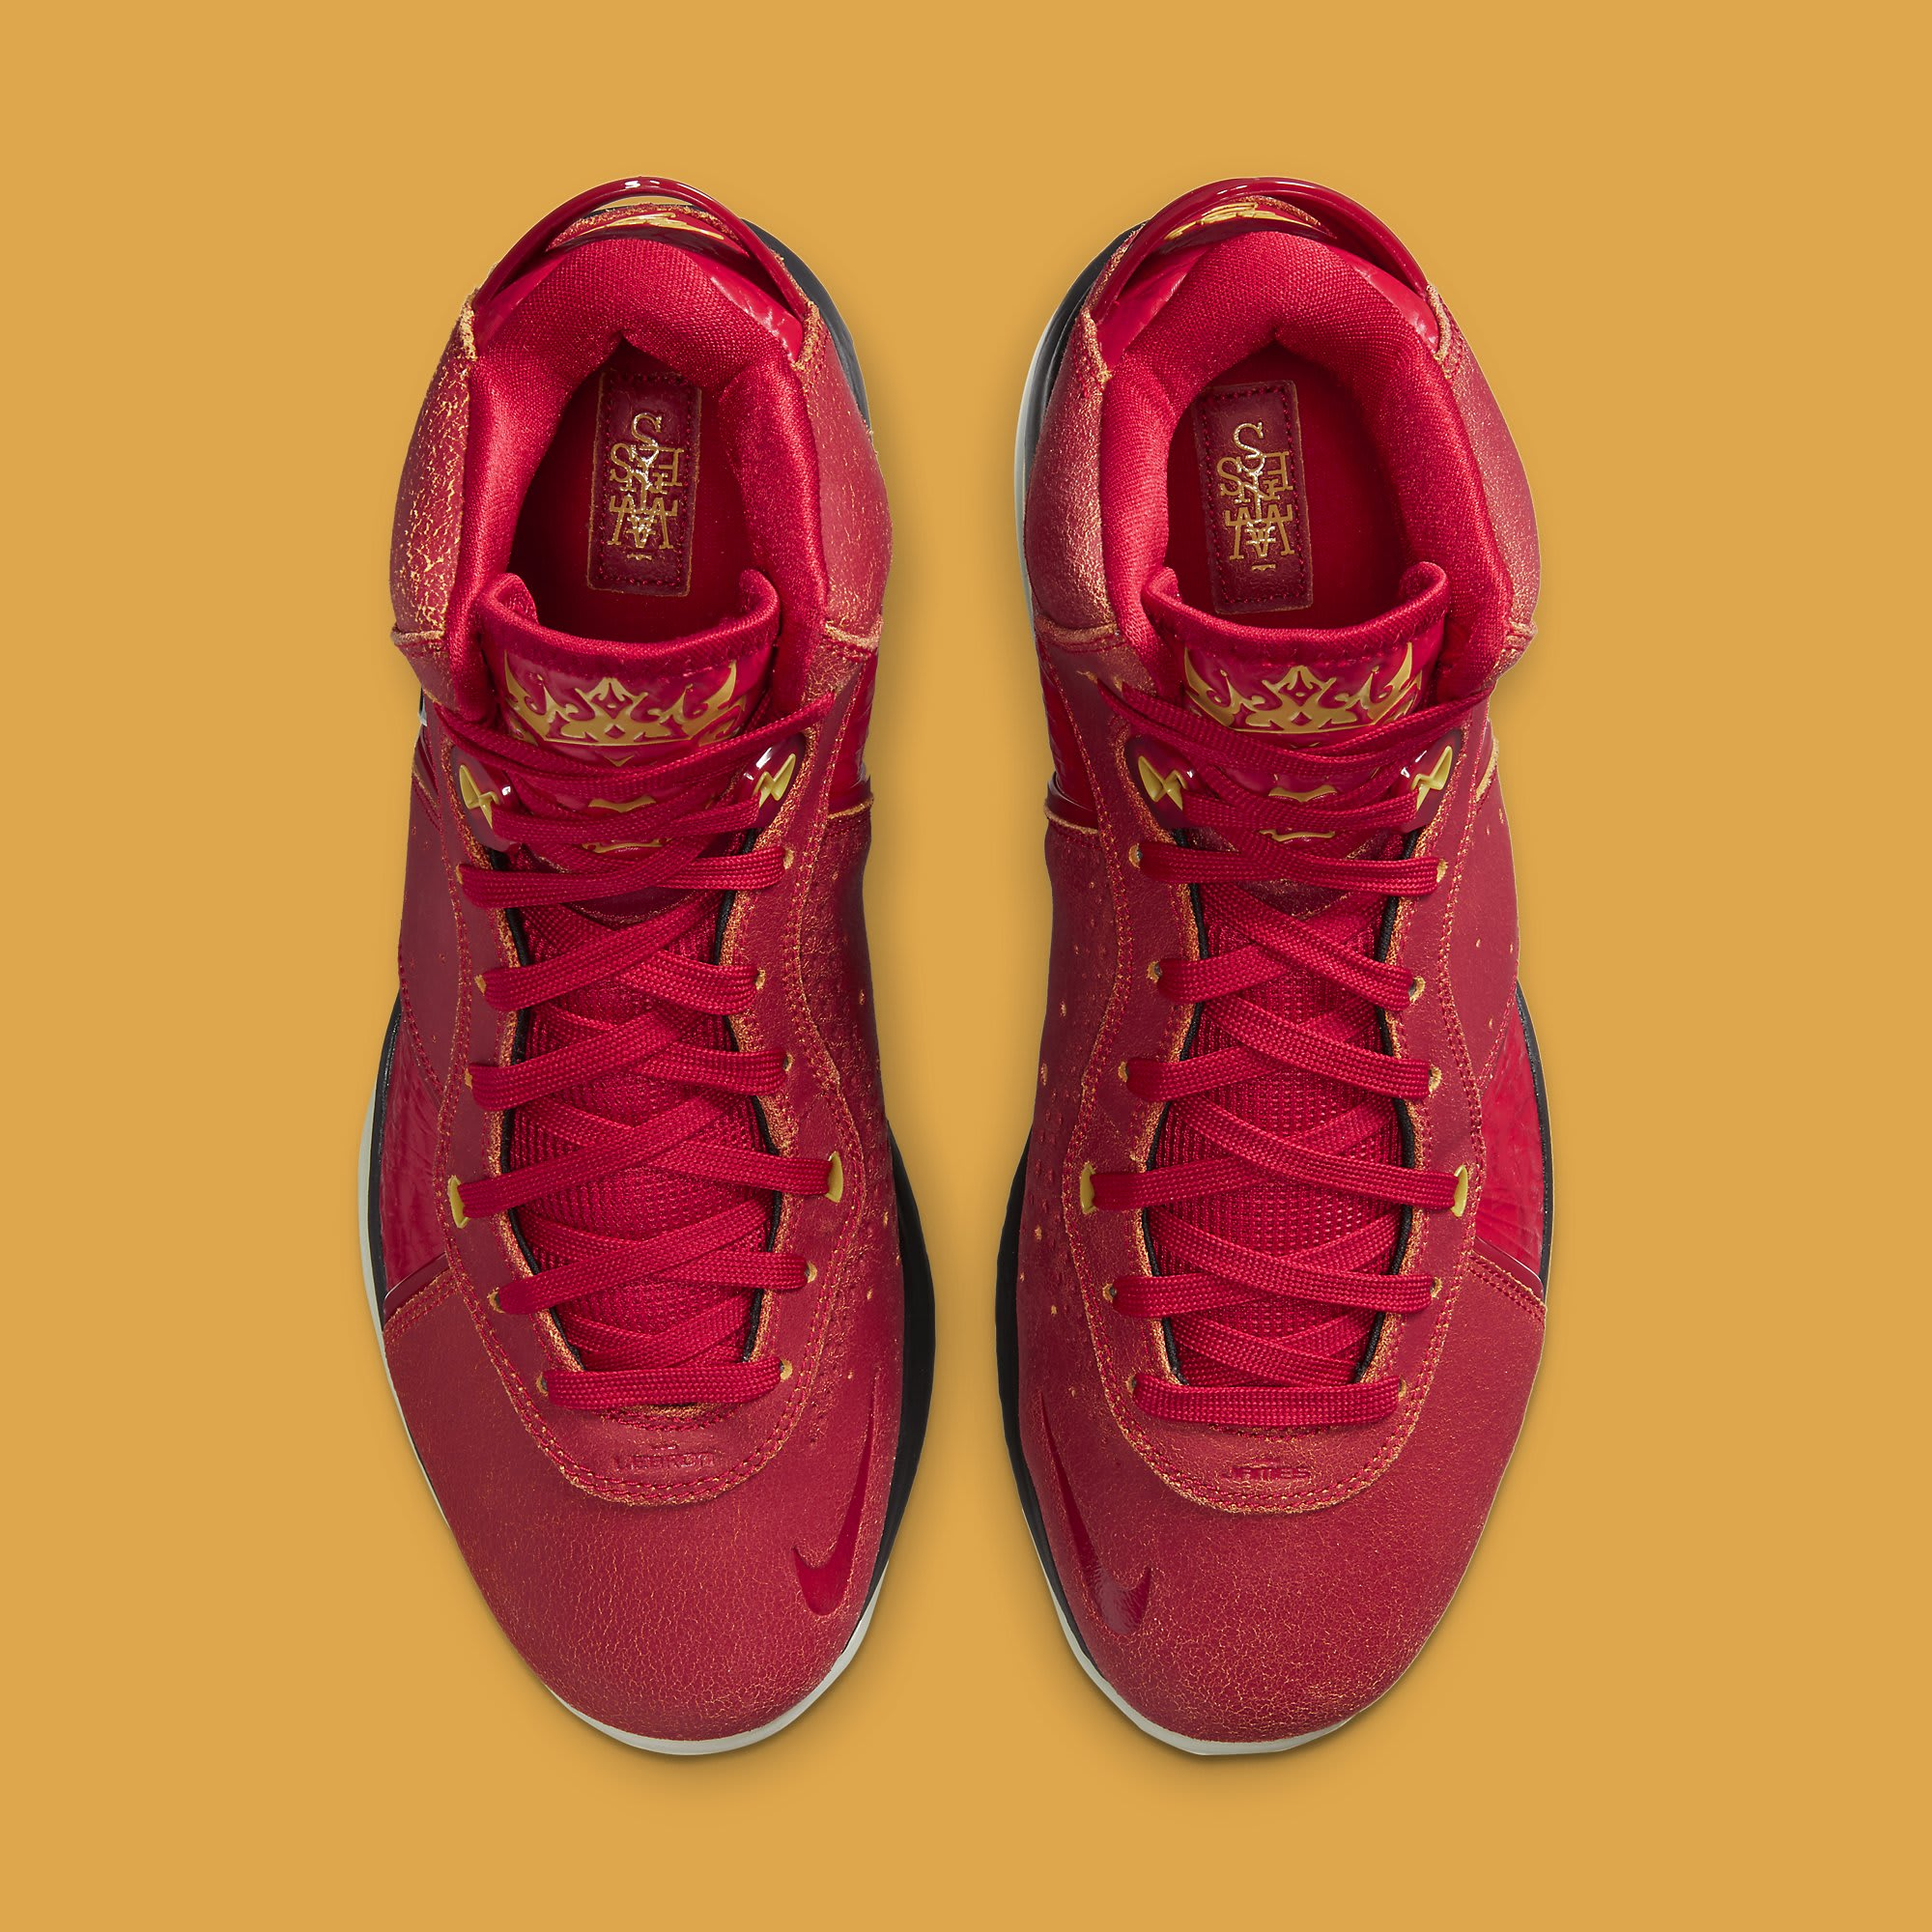 Nike LeBron 8 QS 'Gym Red' CT5330-600 Top